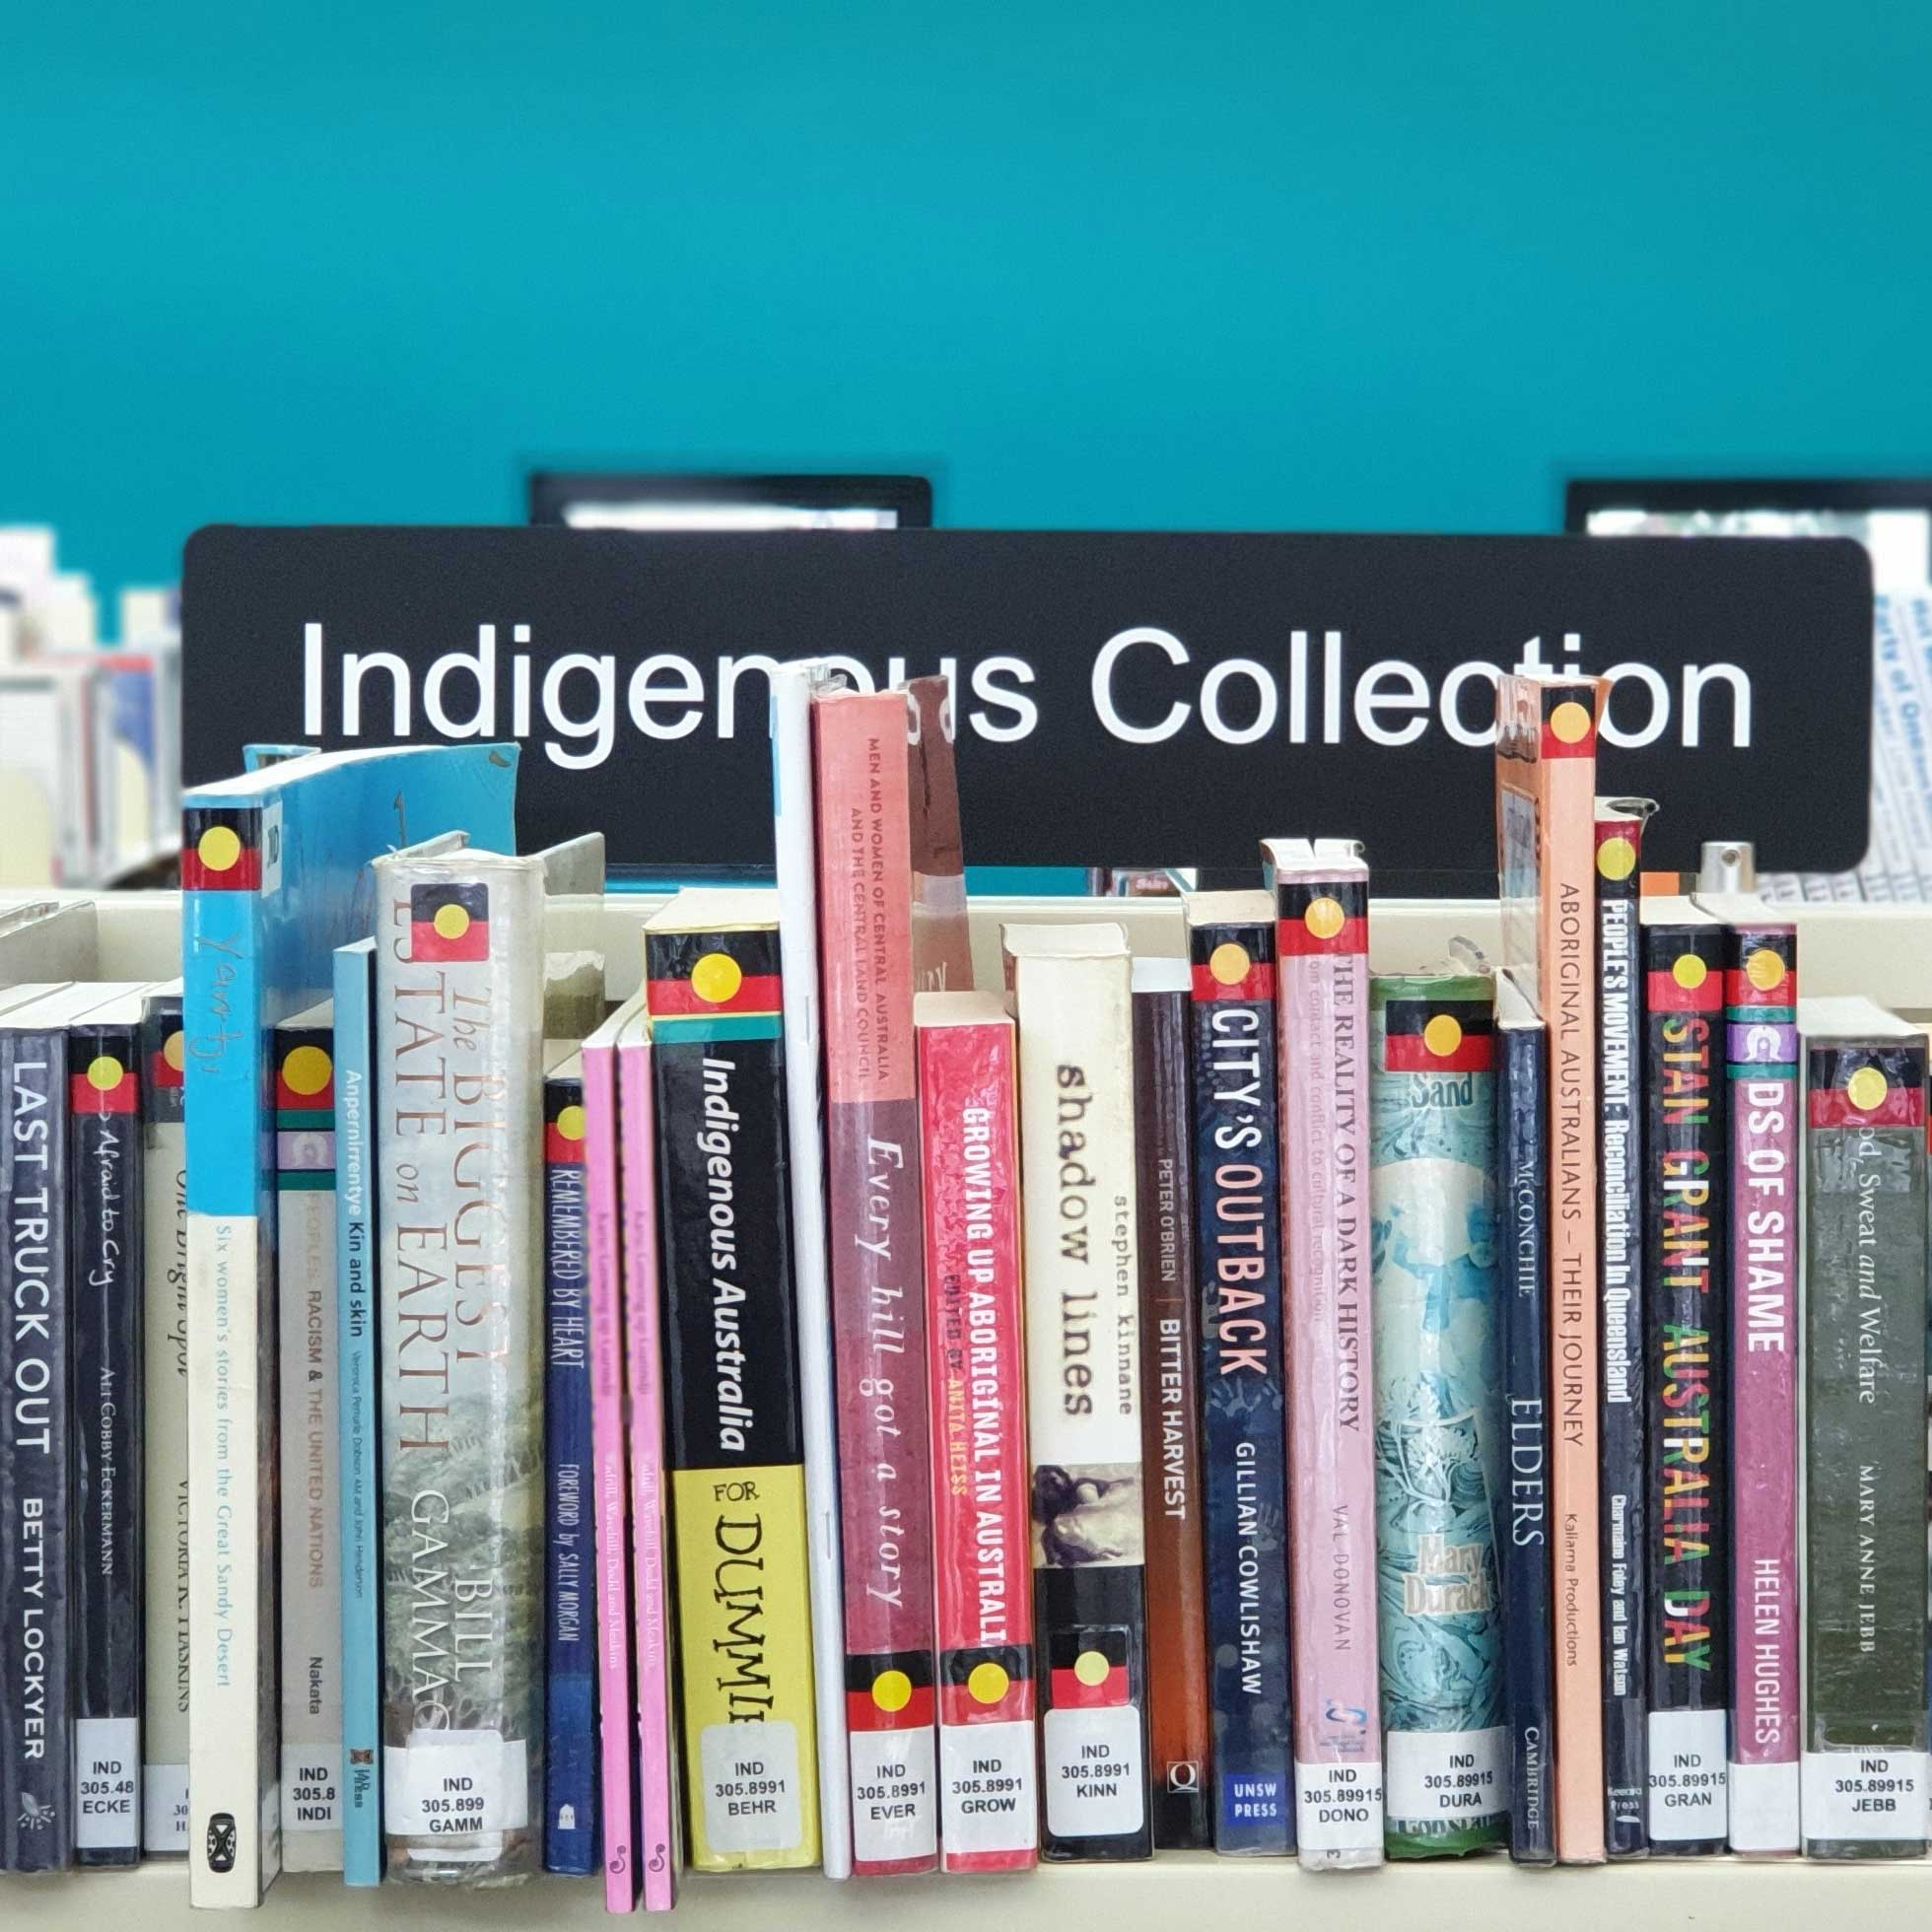 Indigenous collection